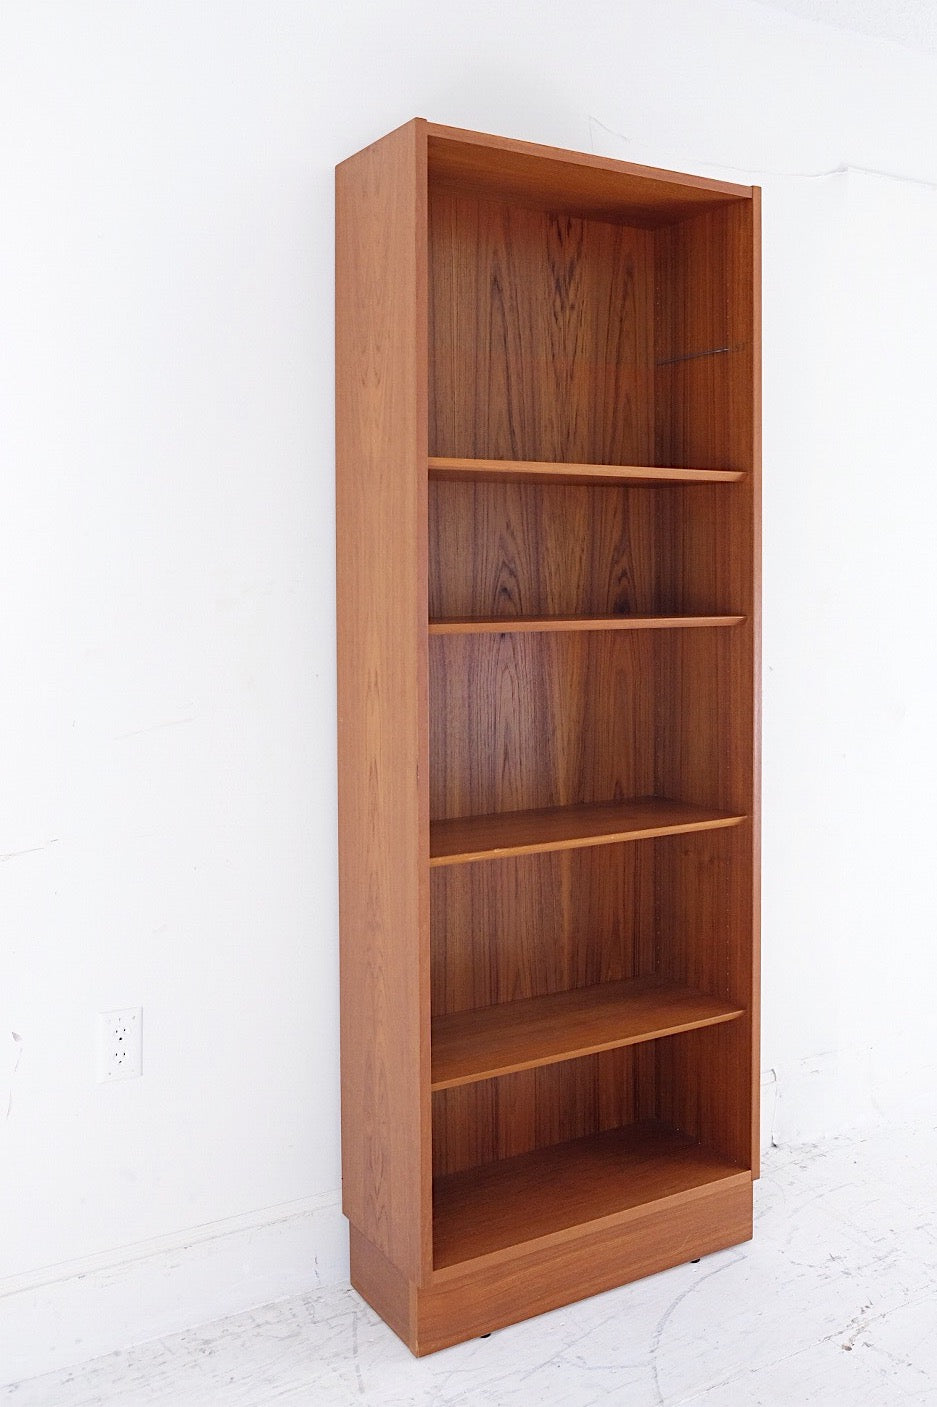 Poul Hundevad Teak Bookcase Five Shelves Danish Mid Century Modern